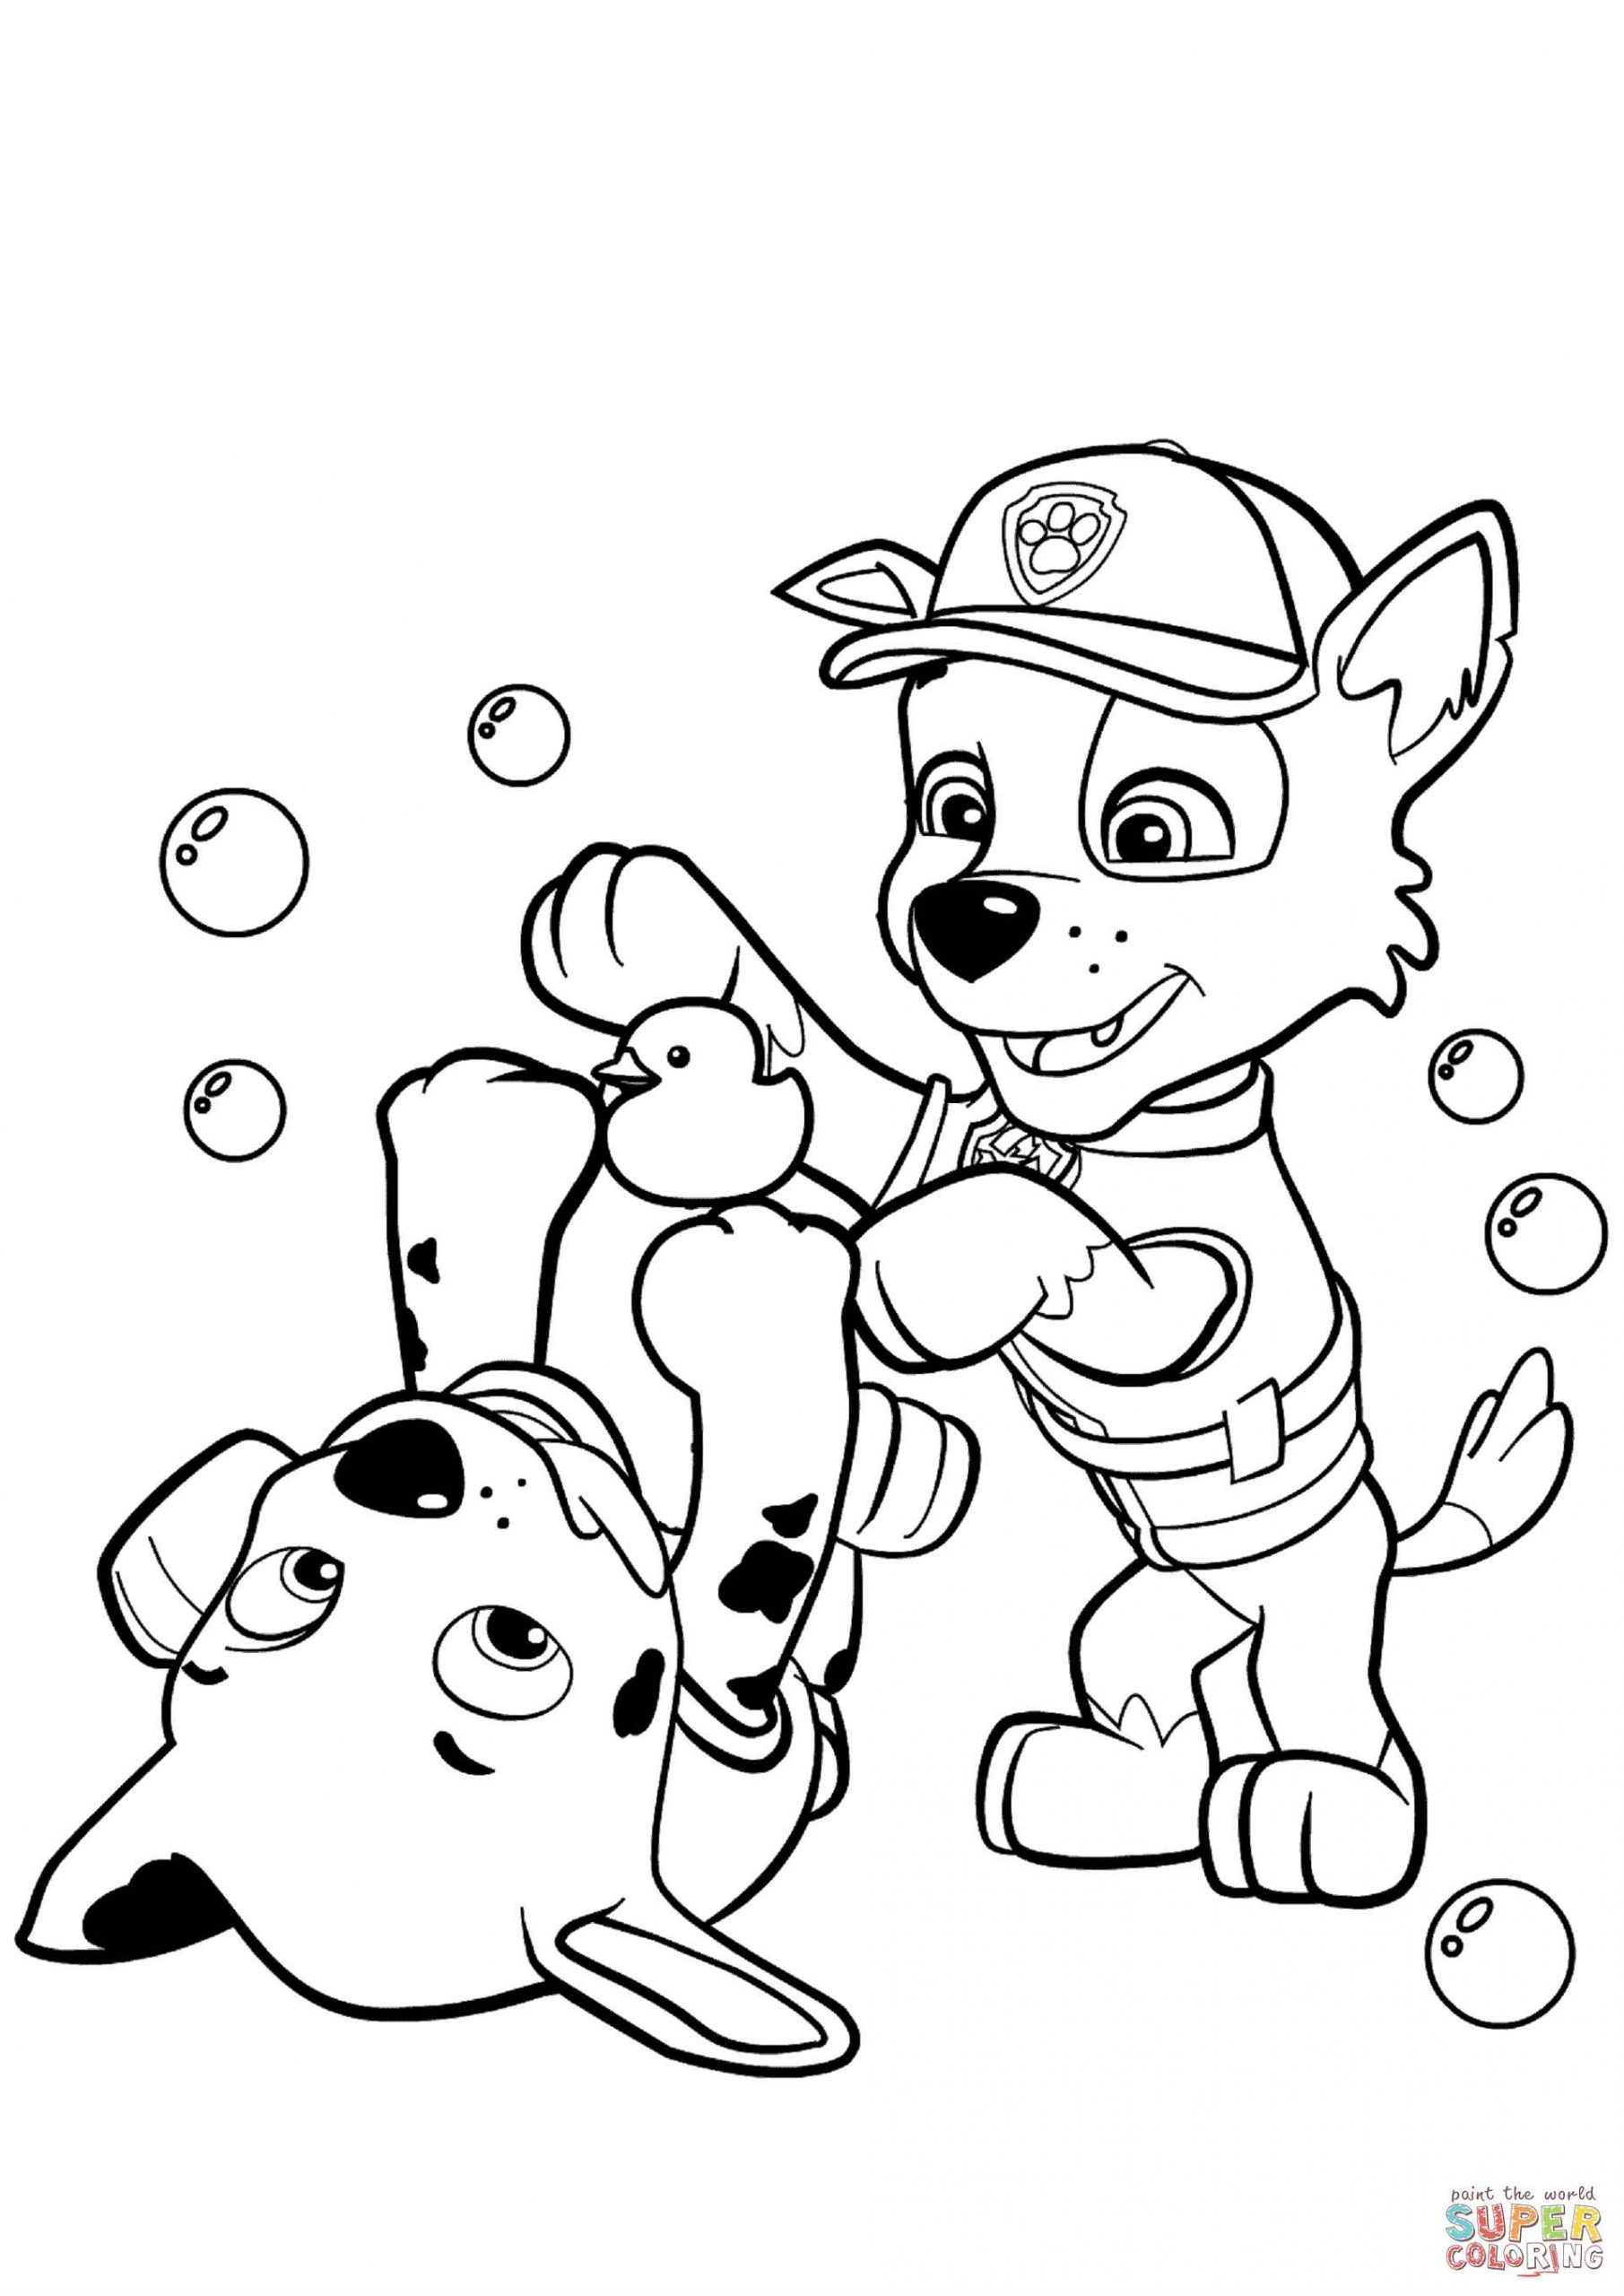 Marshal, Chase Are Playing With Soap Bubbles Coloring Page